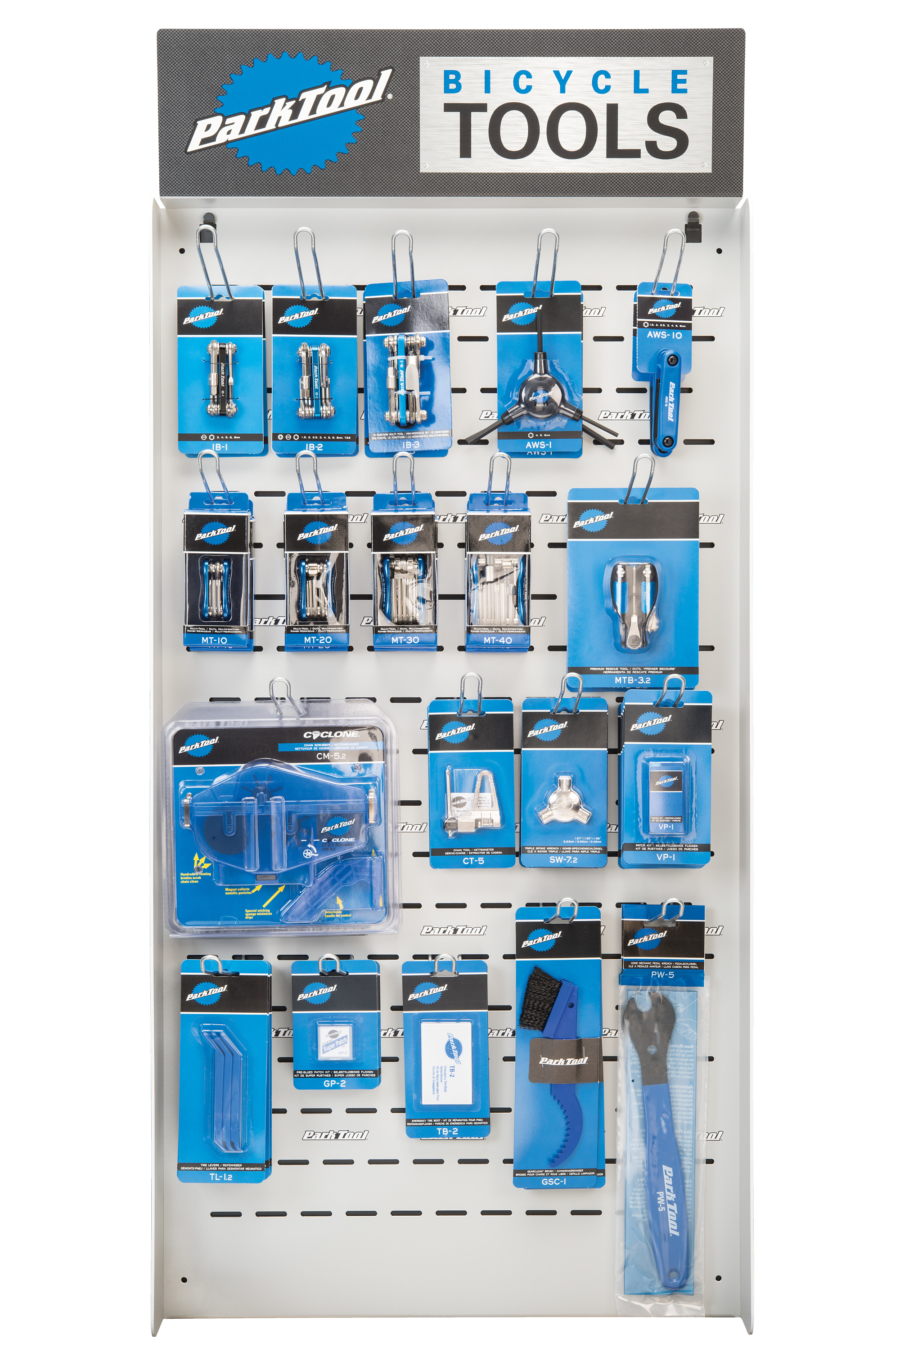 The Park Tool PDR-5.2 Mini Wall Display, enlarged